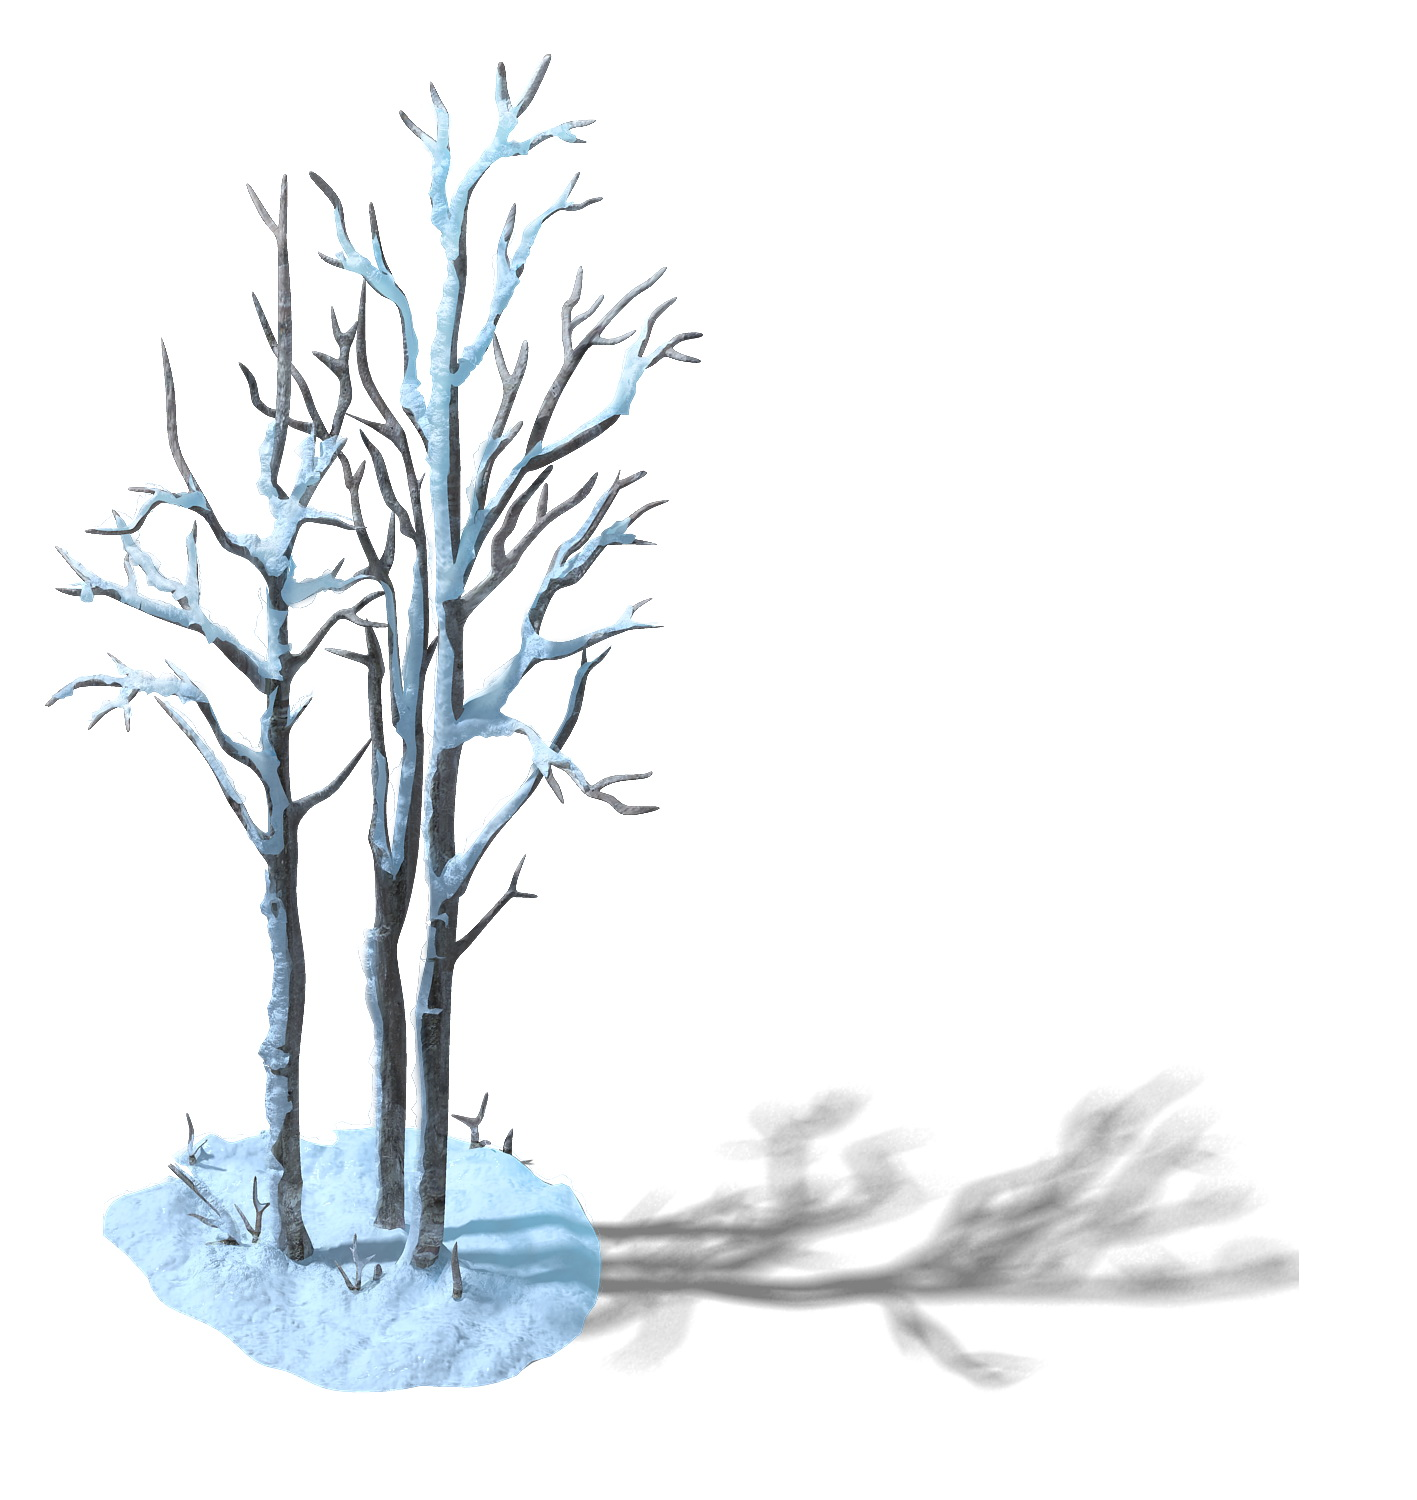 The game model of snow - white birch forest 01